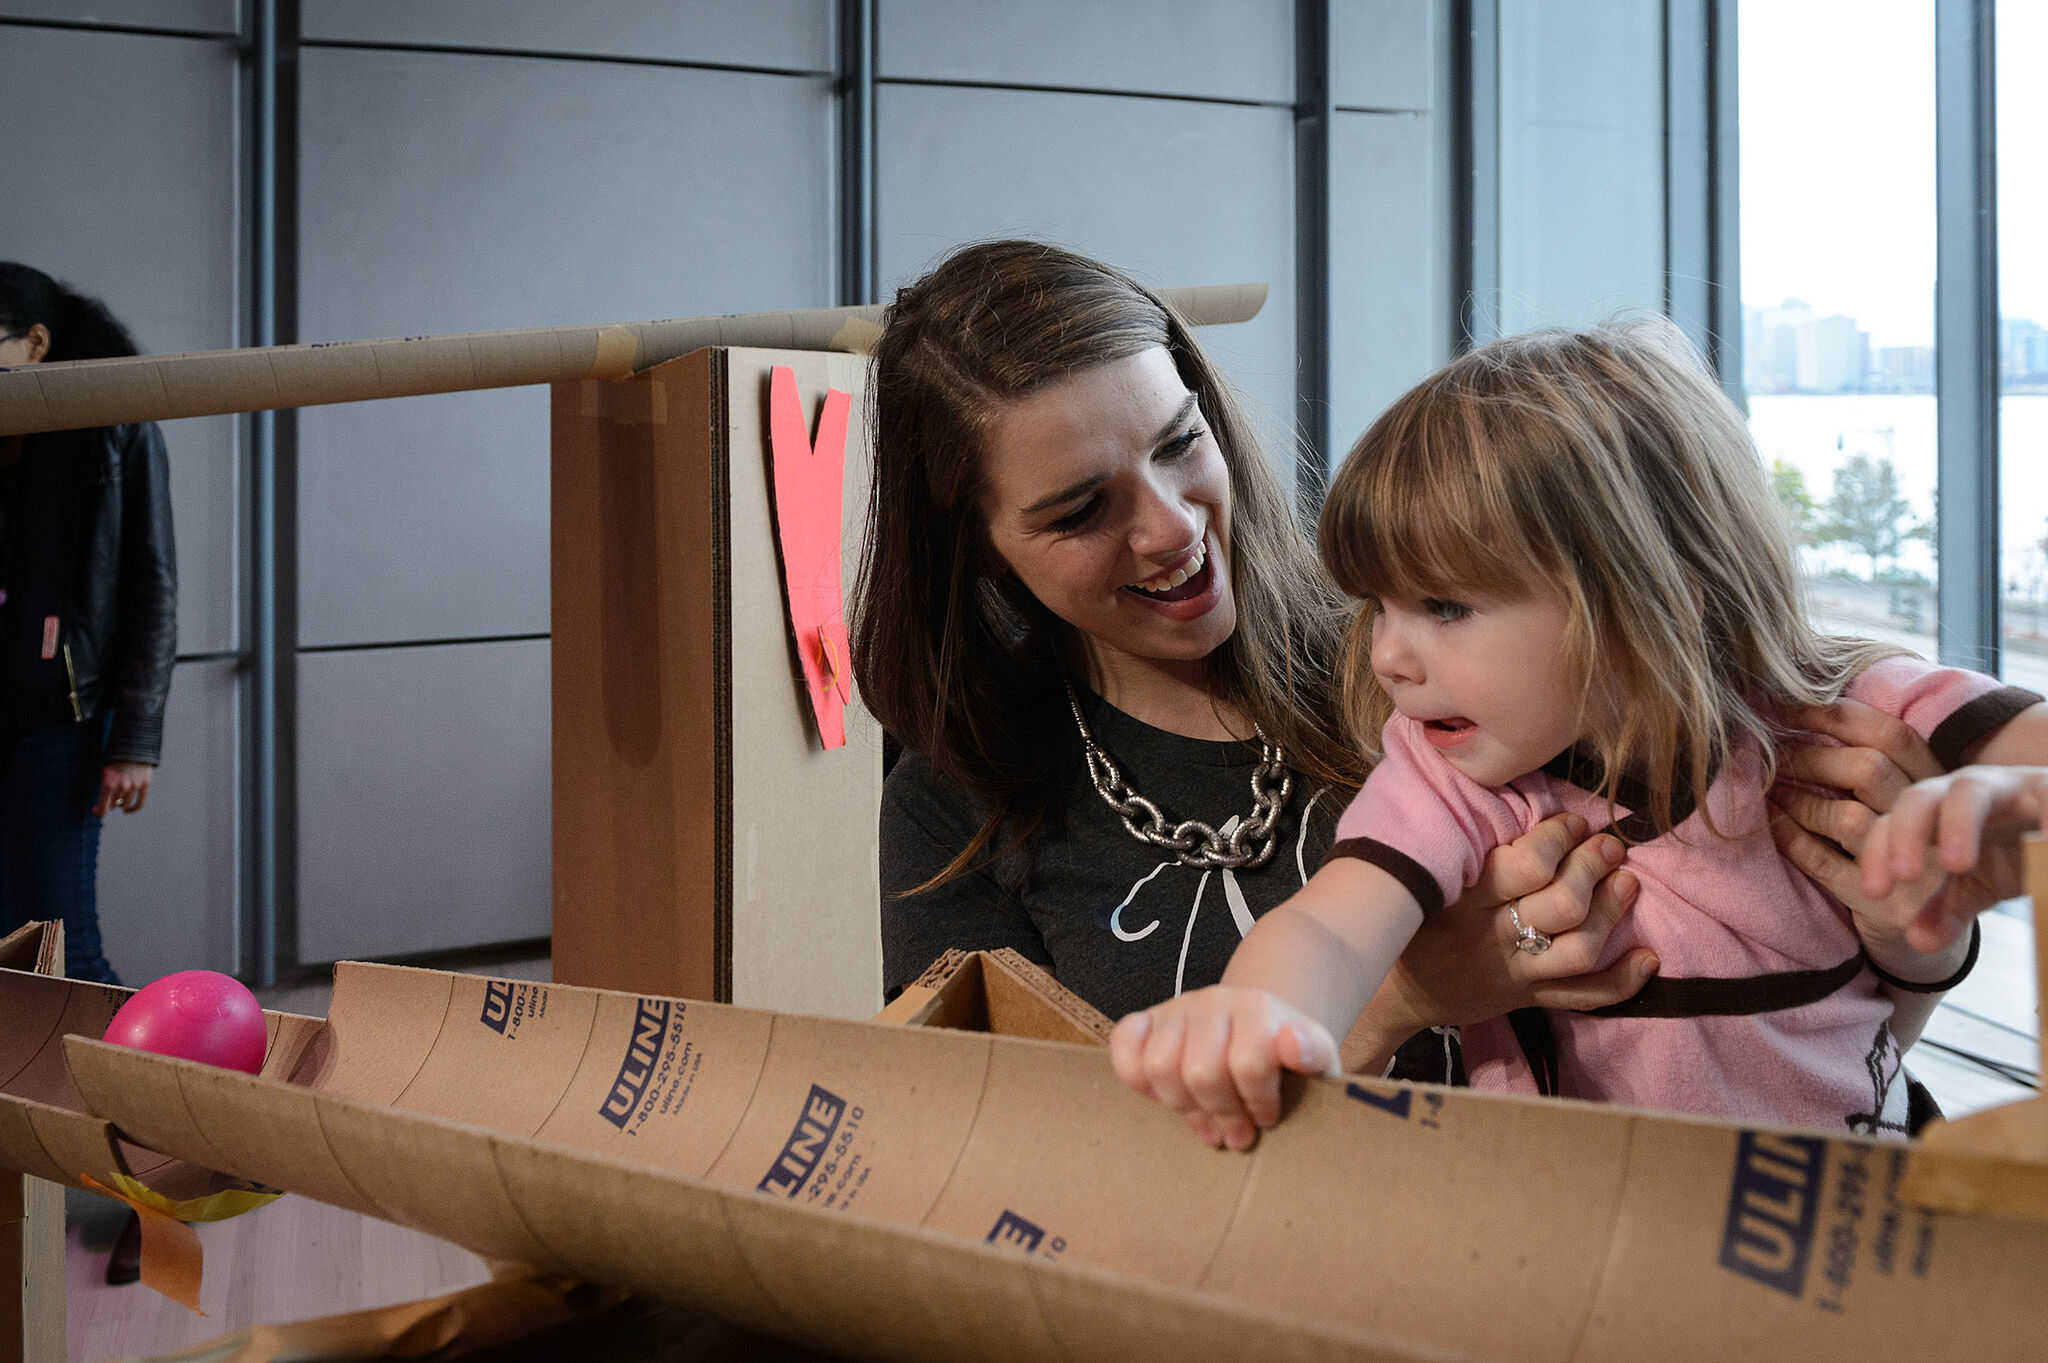 Mother and daughter play in front of cardboard.